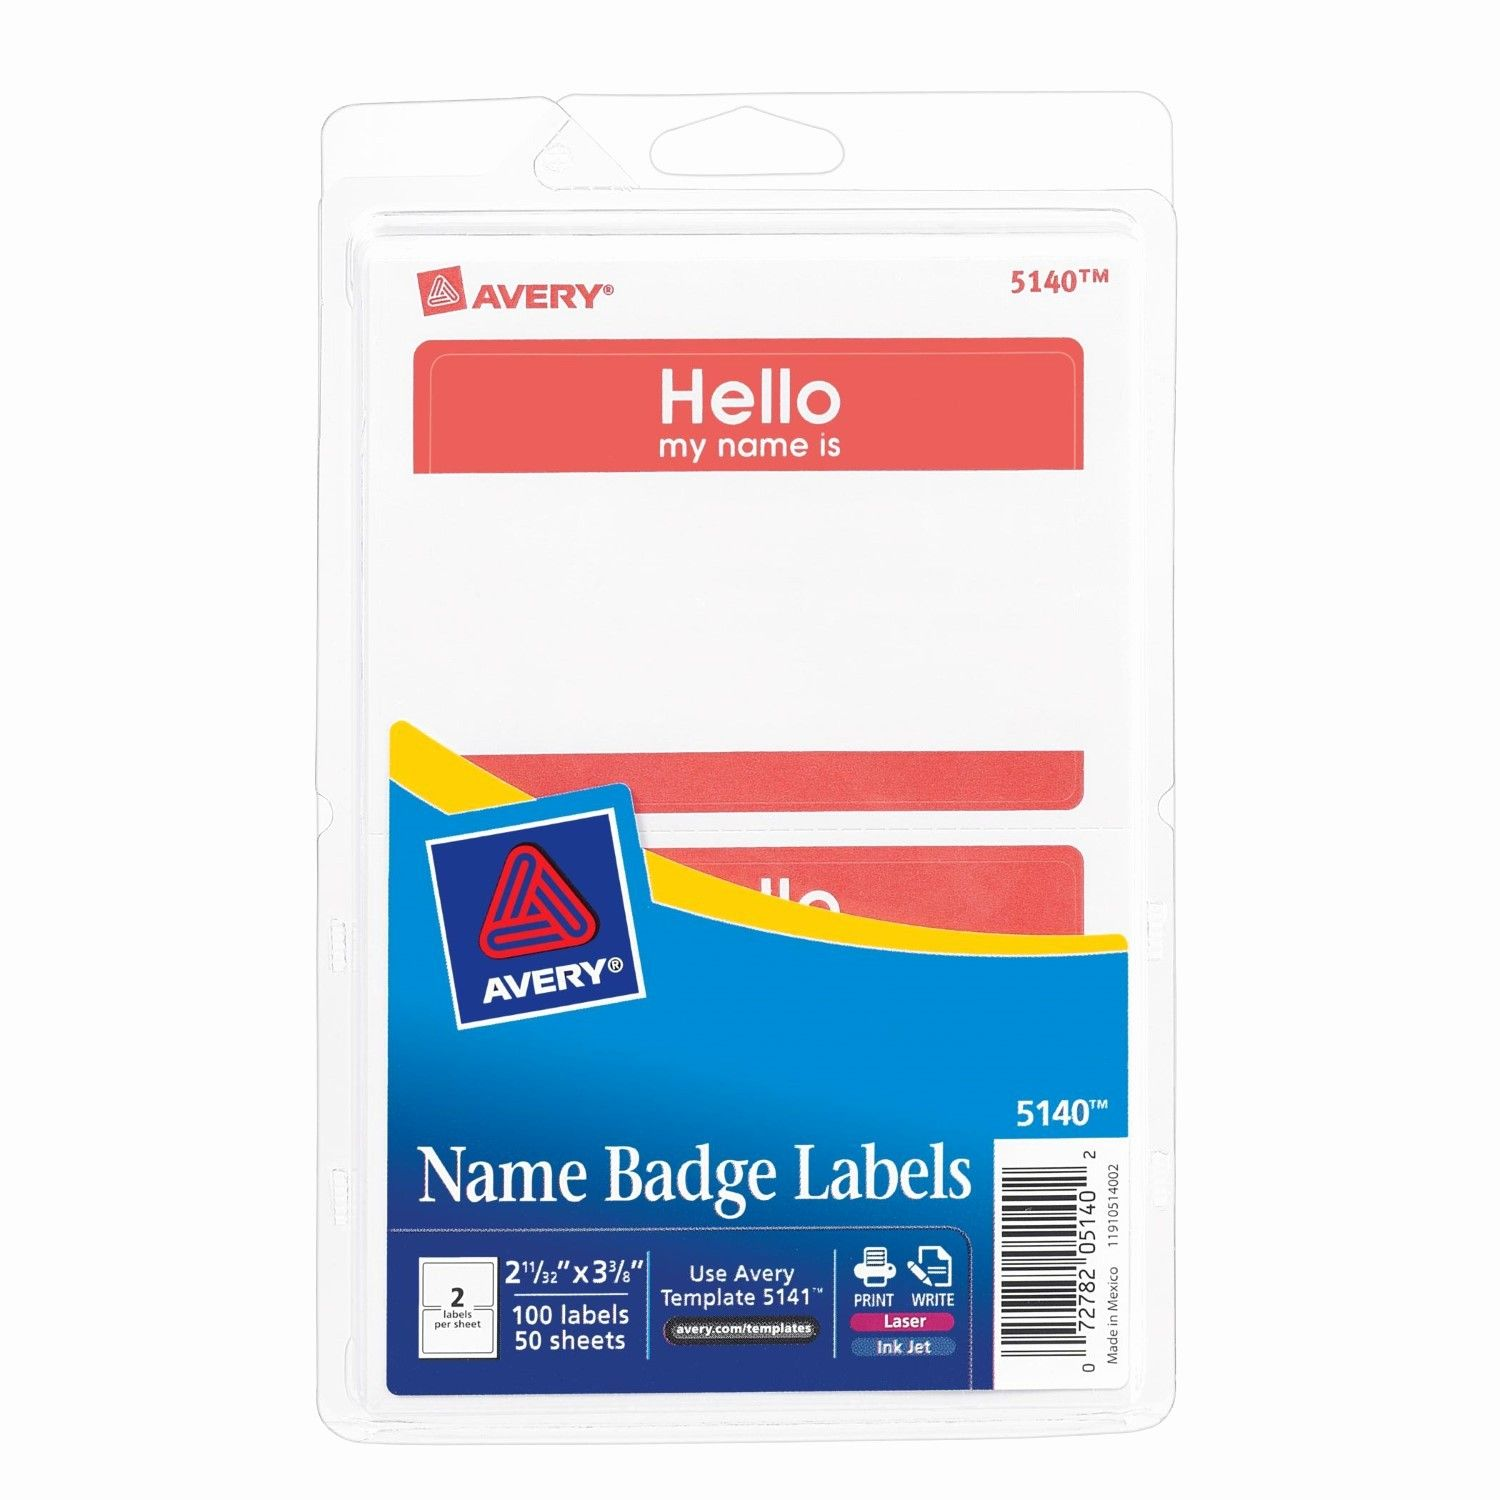 Avery Name Badge Labels Template Inspirational Avery Border Print Or Write Name Badge Labels 2 34 X 3 38 Label Templates Name Badges Labels